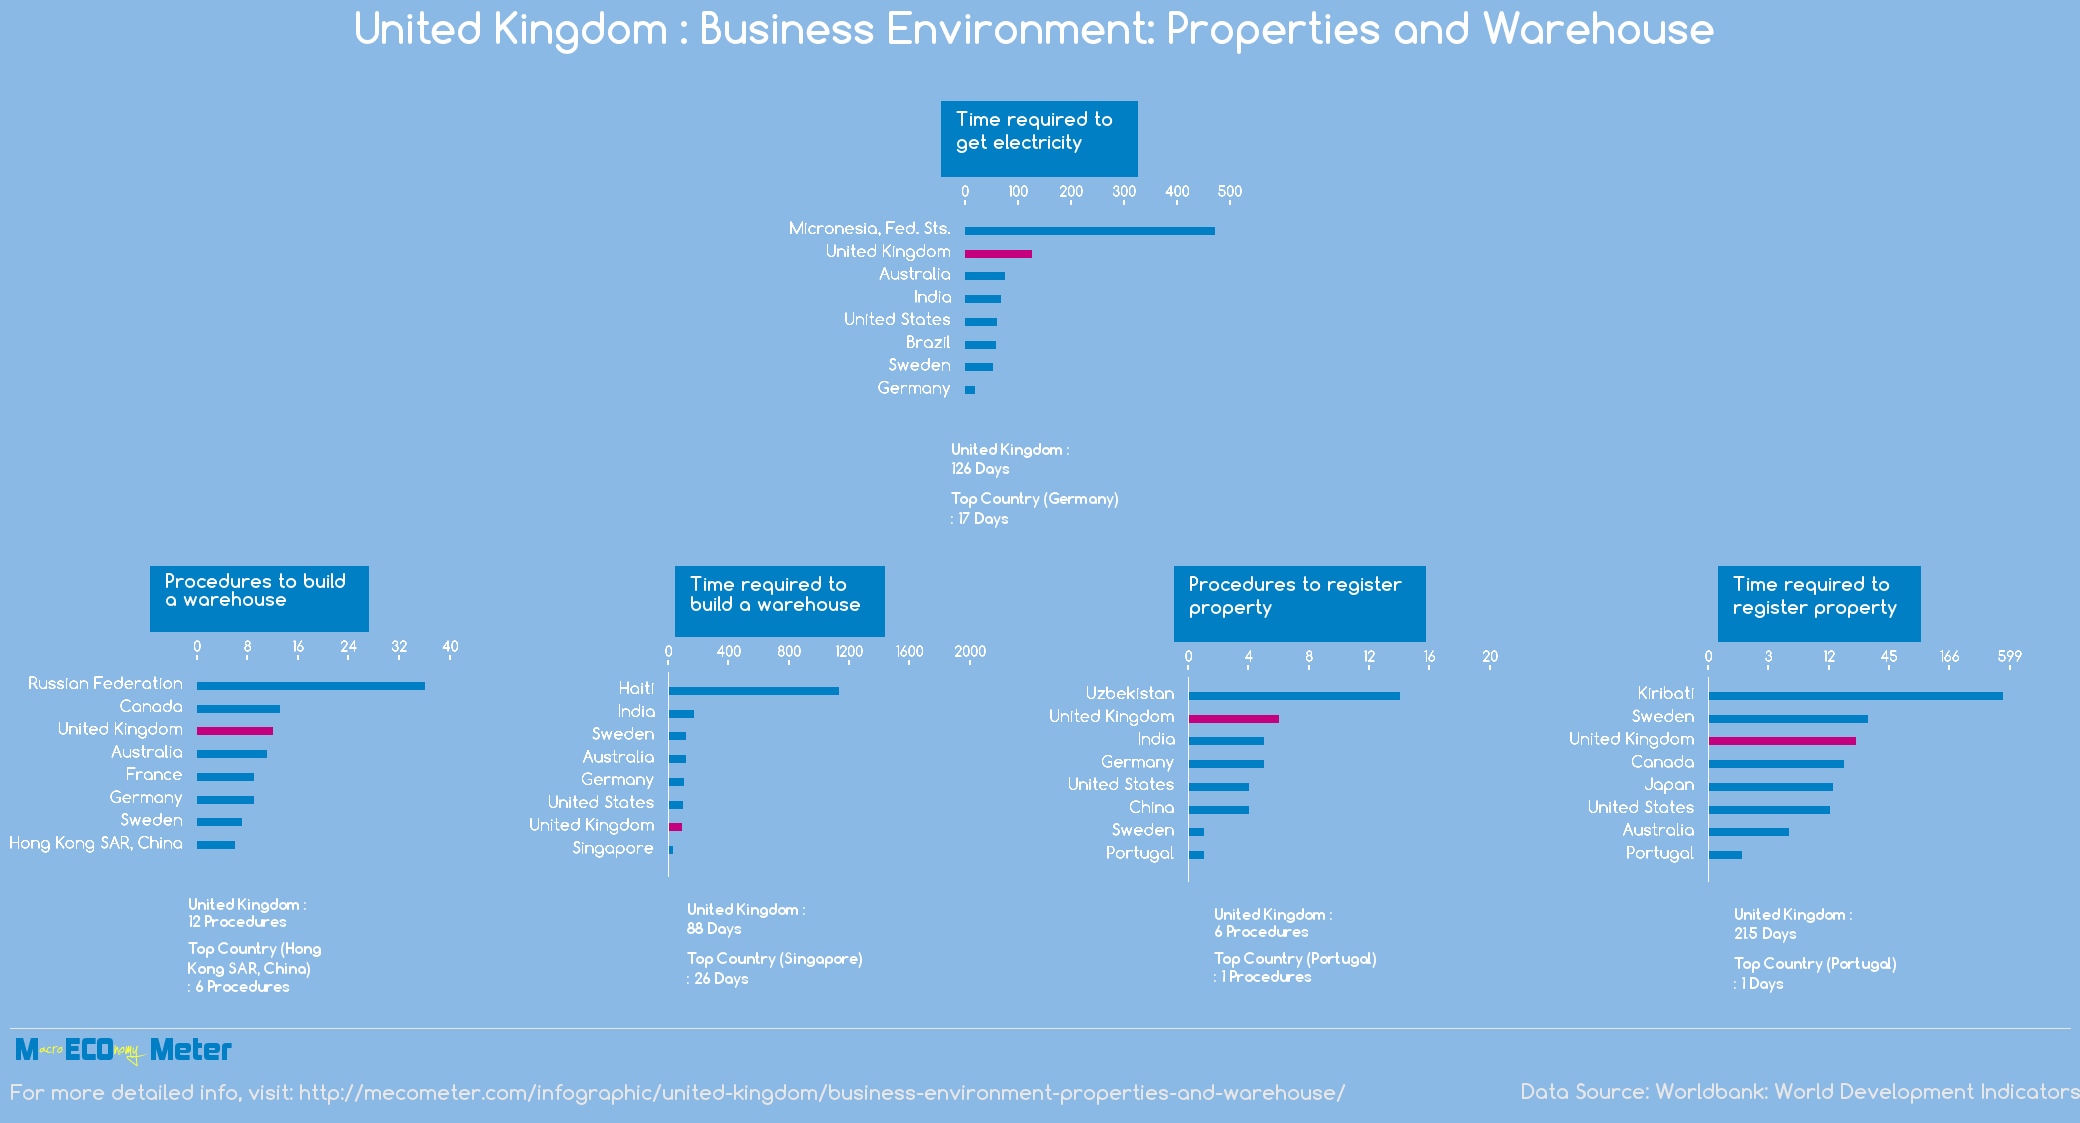 United Kingdom : Business Environment: Properties and Warehouse